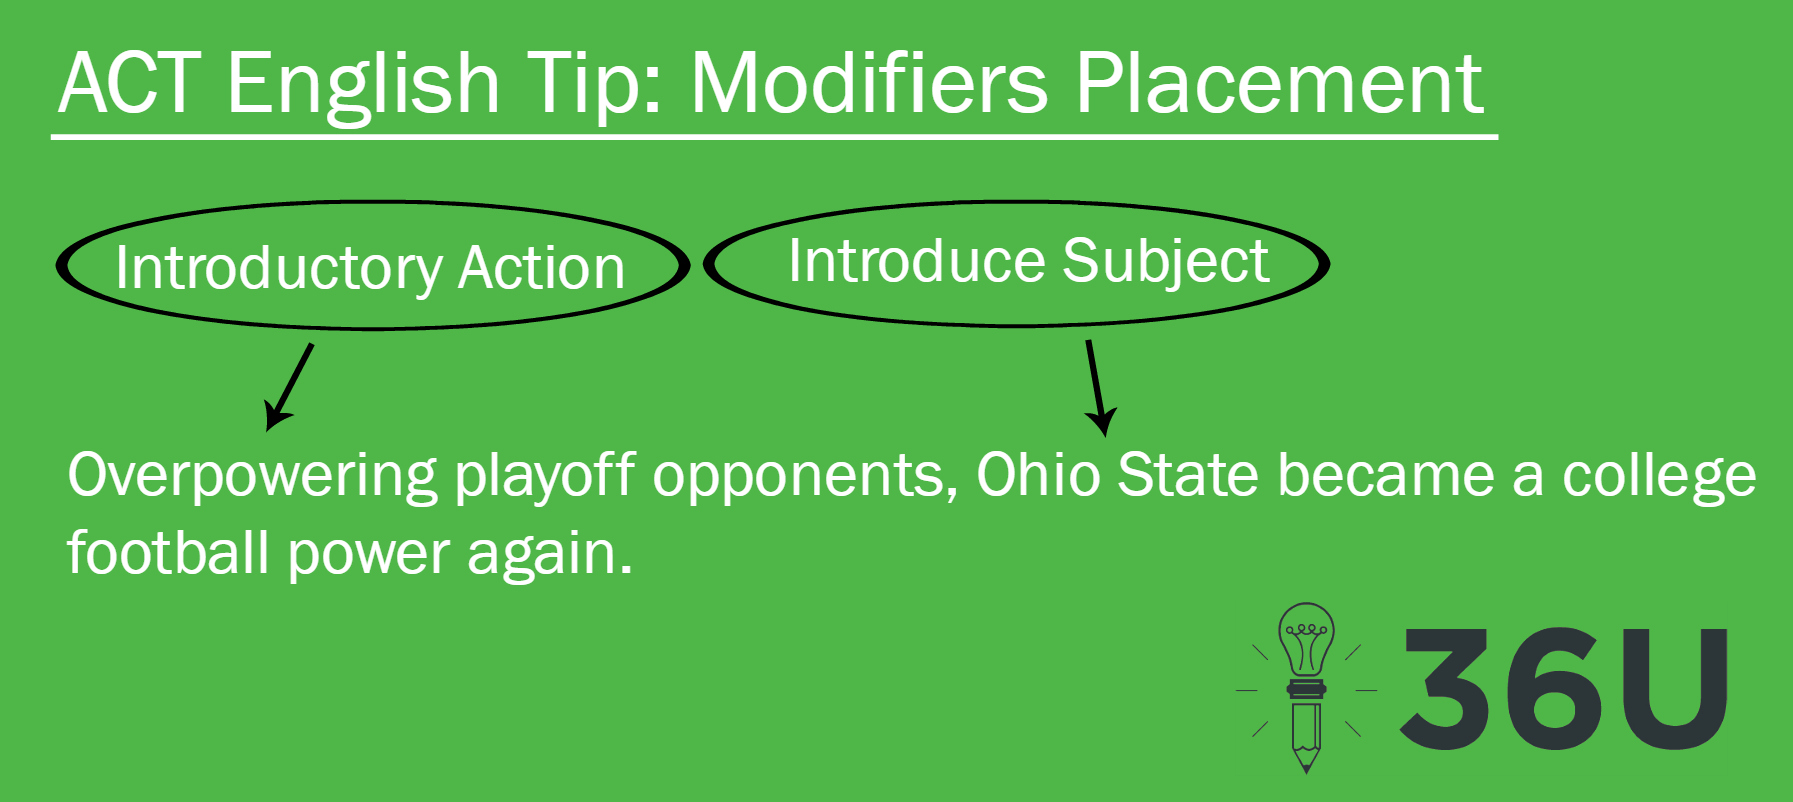 Modifiers Tip 1.13.15